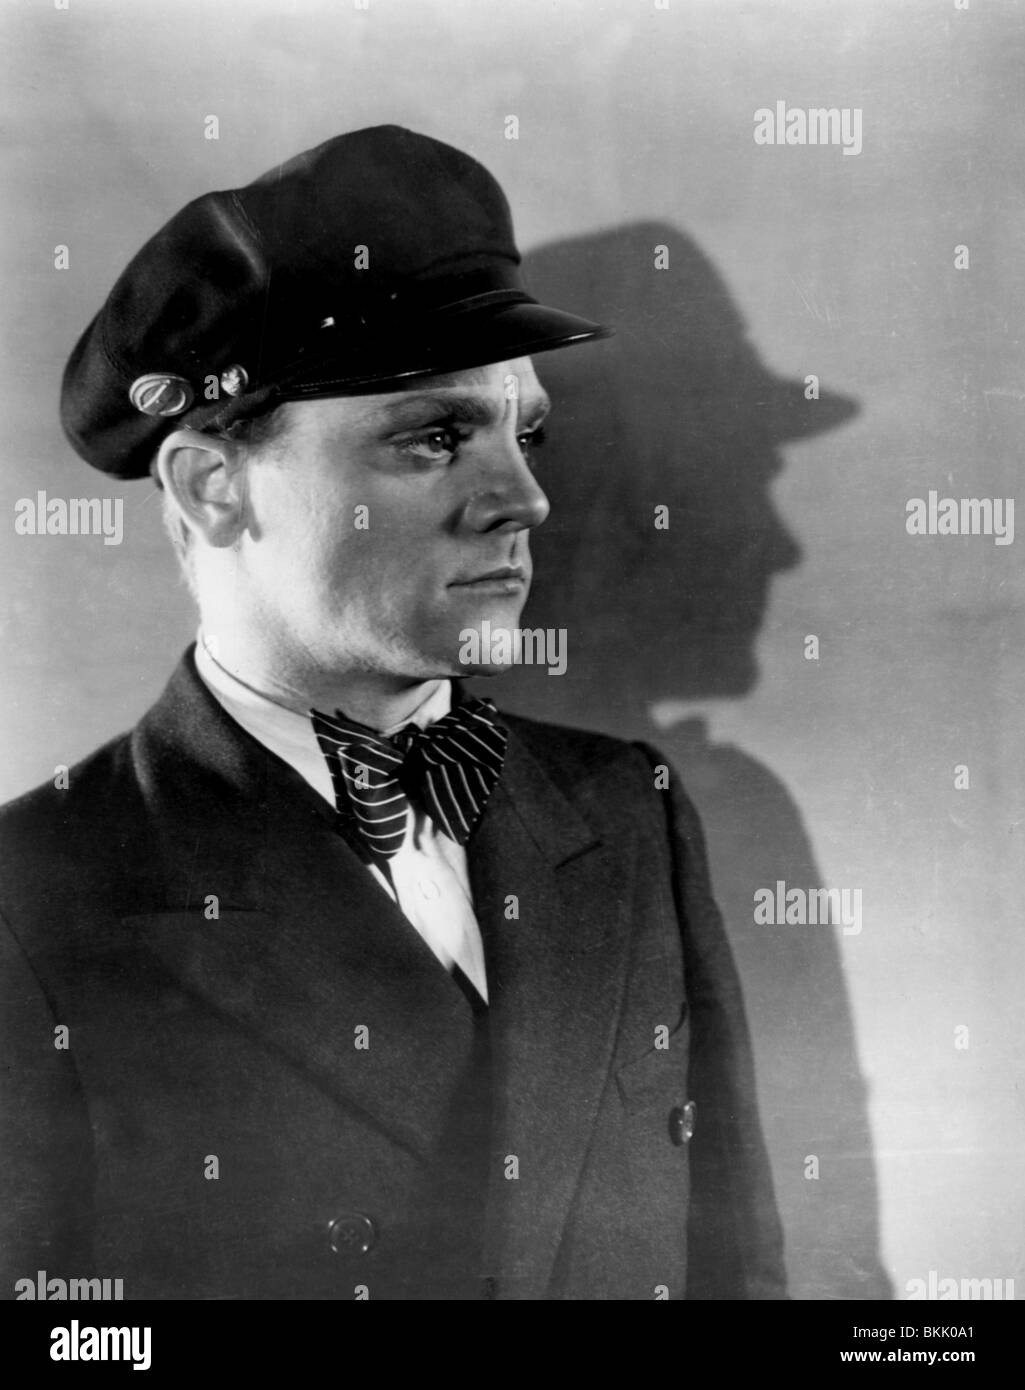 TAXI -1931 James Cagney Immagini Stock